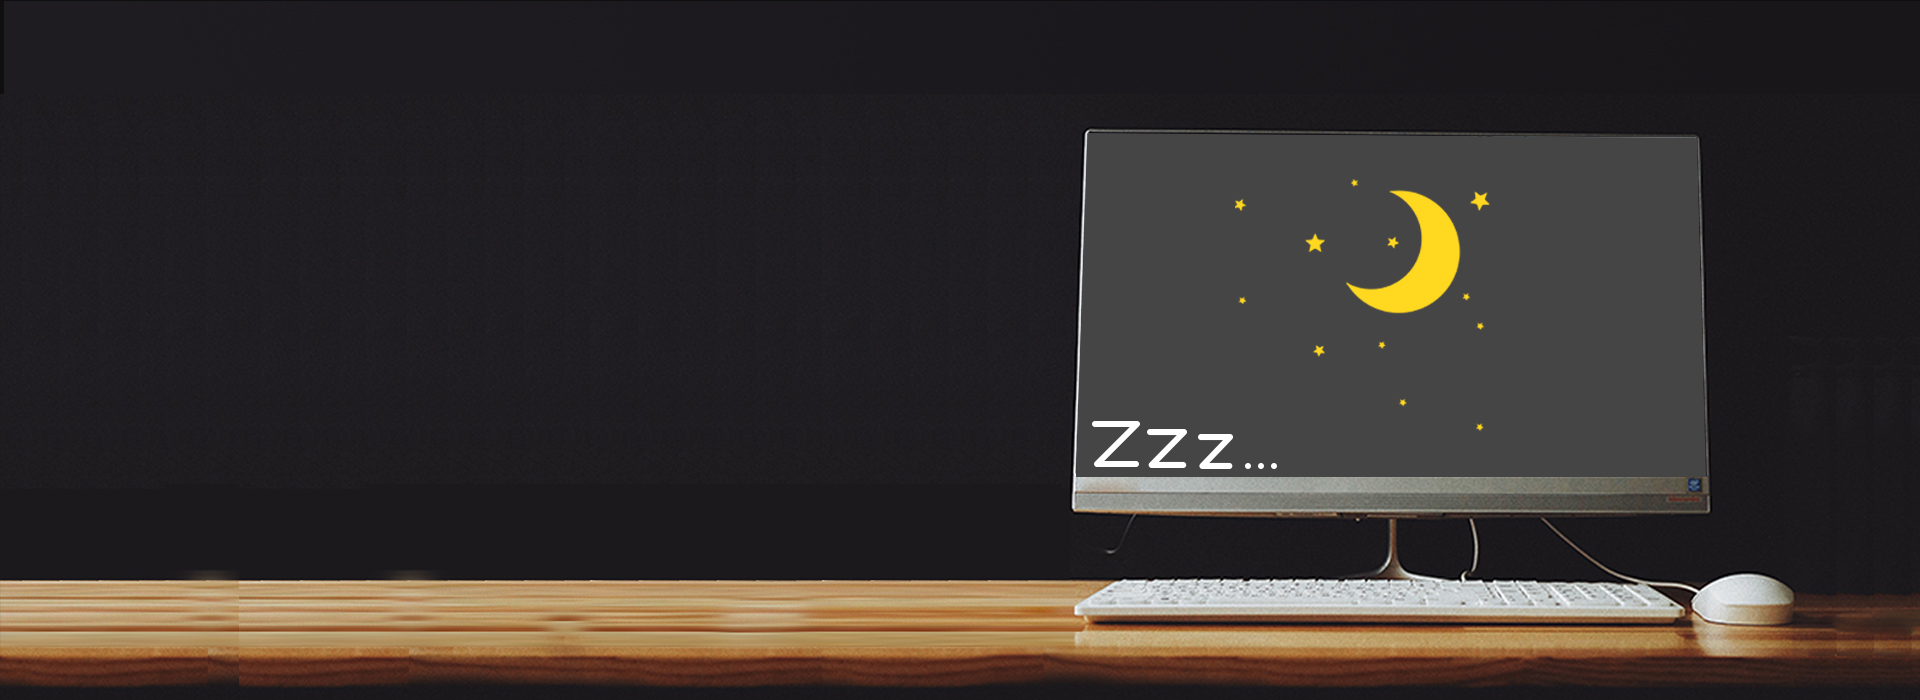 How to Adjust Laptop Sleep Time